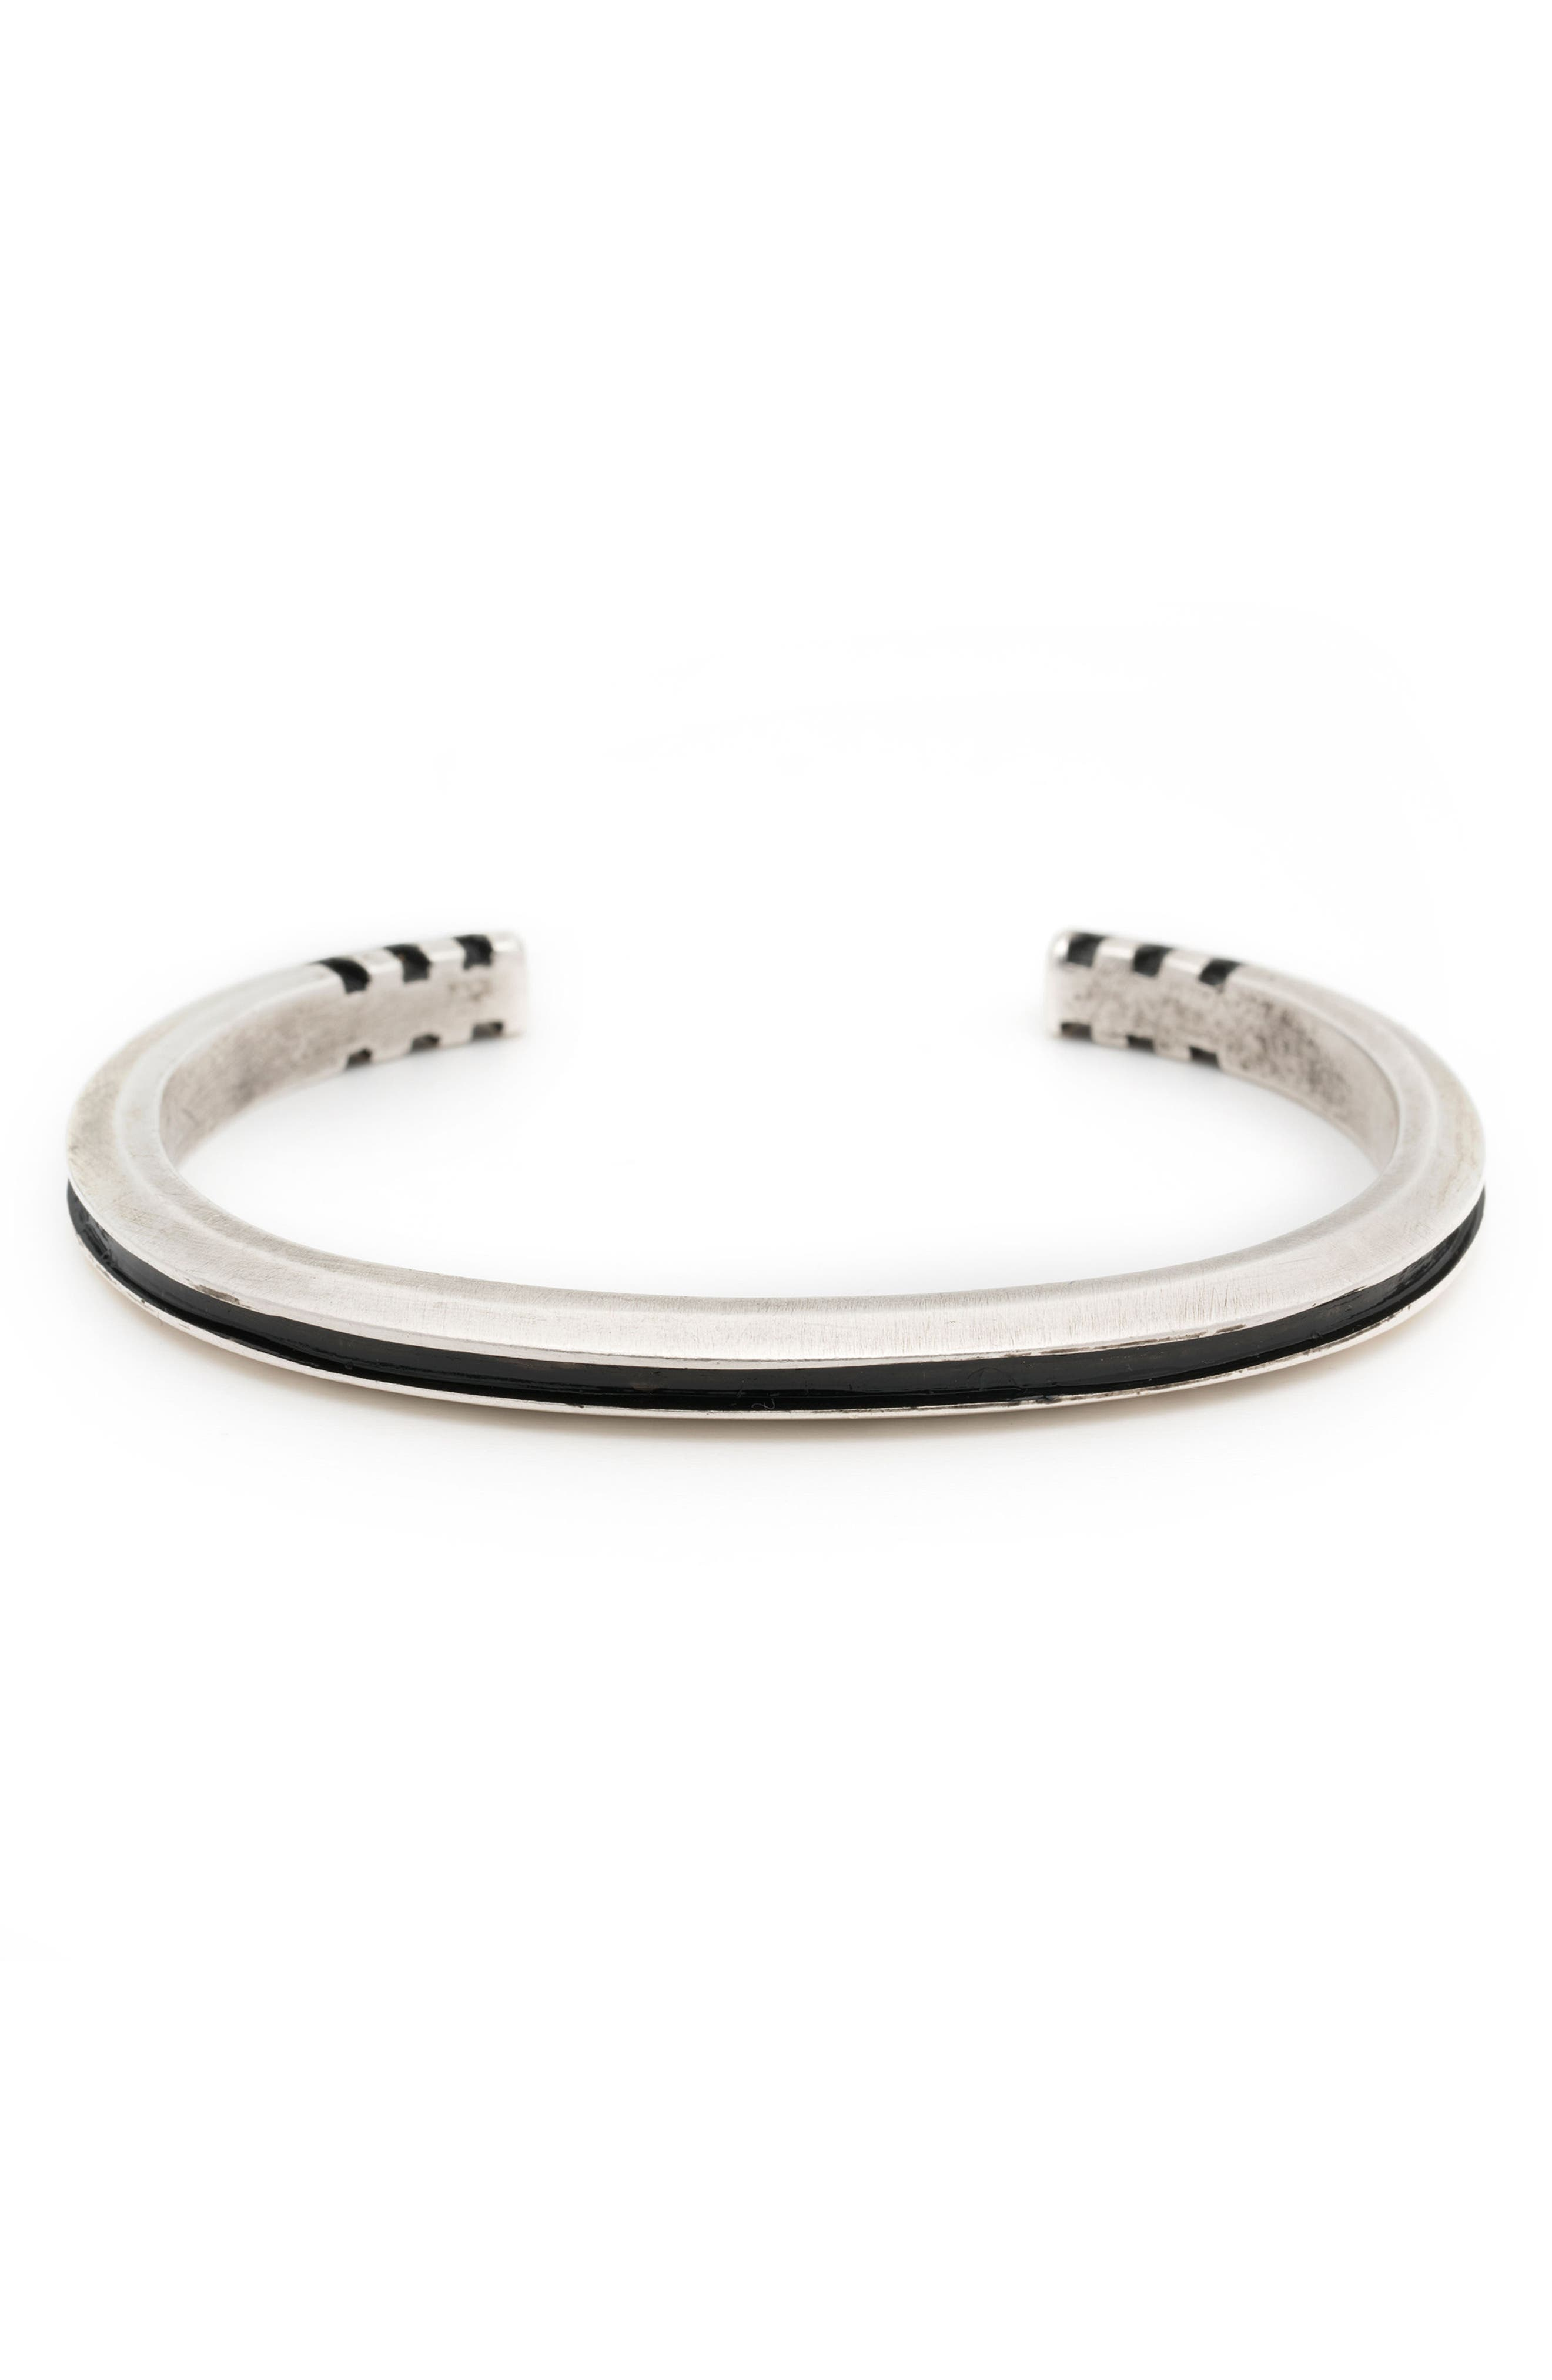 Totality Cuff Bracelet,                             Alternate thumbnail 2, color,                             Silver